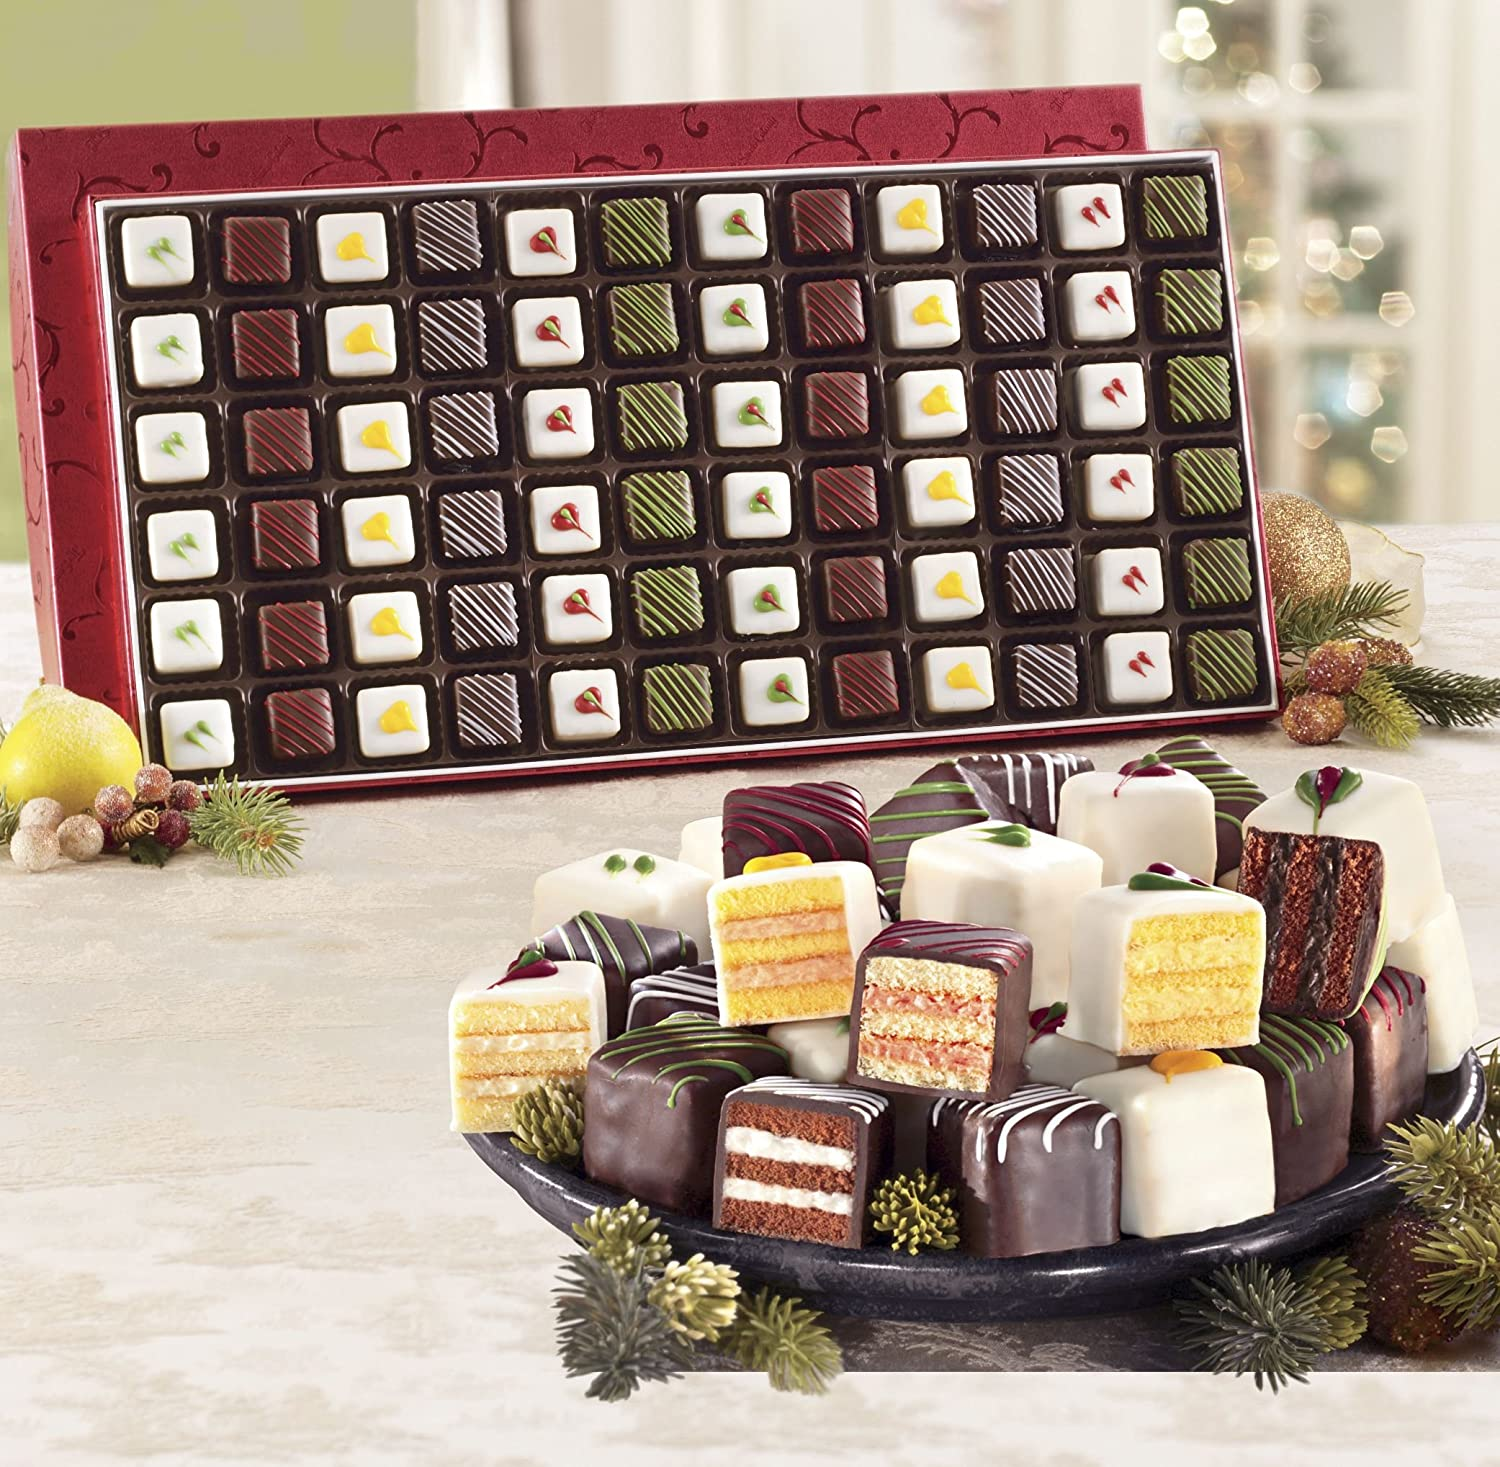 Piece Petits Fours From The Swiss Colony Amazoncom Grocery - Figis com invoice